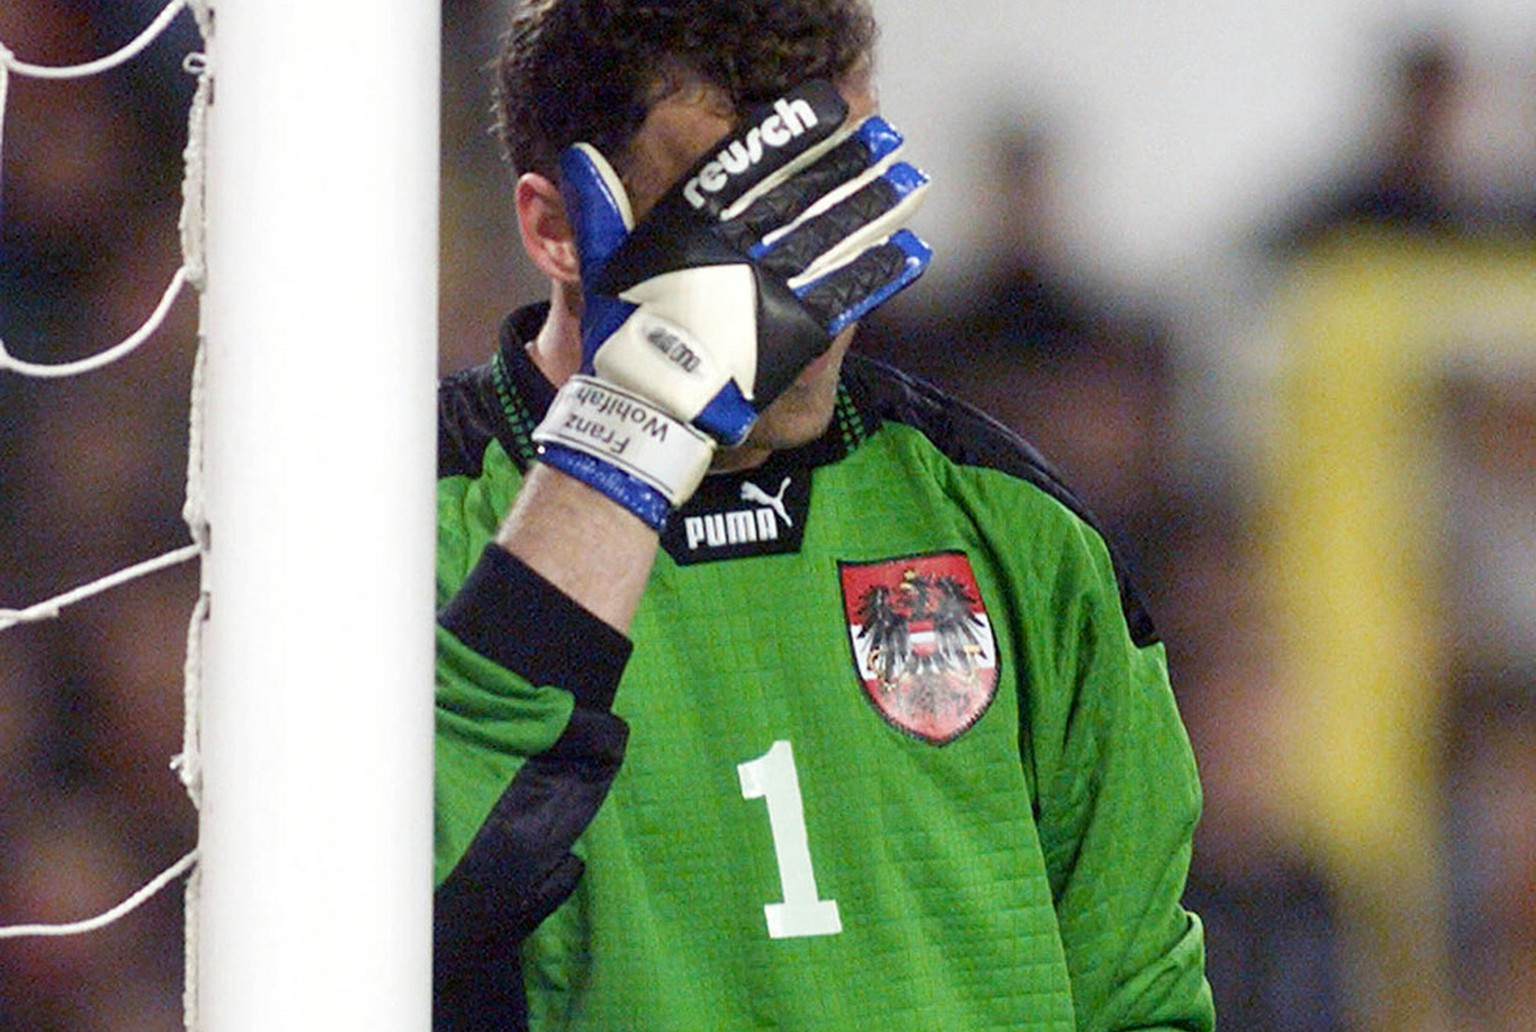 Austrian goalkeeper Franz Wohlfahrt covers his face in dejection during the 2000 European Championship qualifying soccer match Spain vs Austria, Saturday, March 27, 1999, at the Louis Casanova stadium in Valencia, Spain. The Austrian team was beaten by the Spanish with the high score of 0-9.    (KEYSTONE/AP Photo/Rudi Blaha)   === DIGITAL IMAGE ===